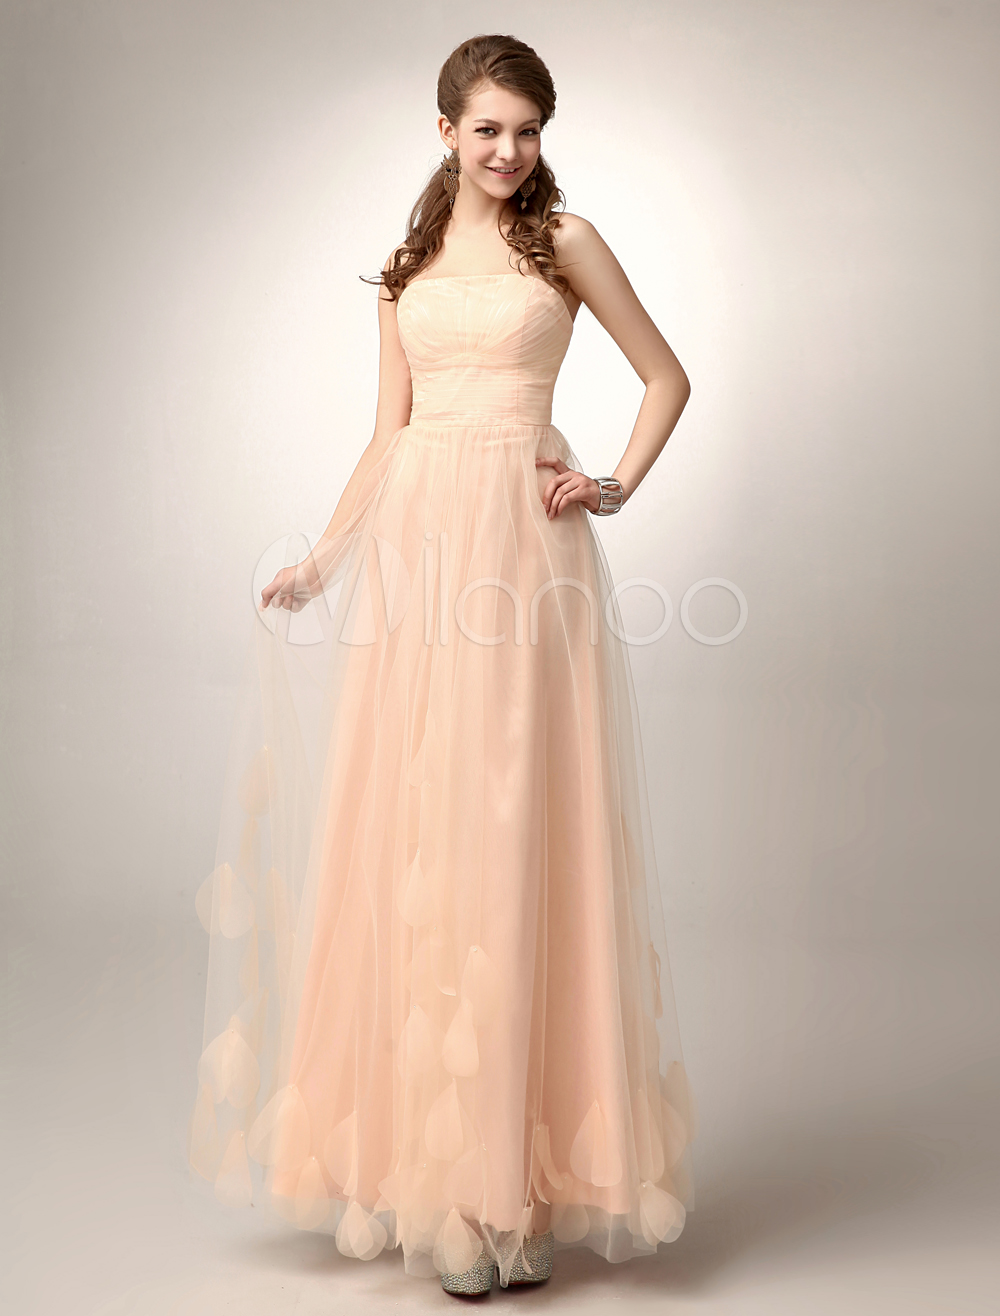 Peach Strapless Prom Dress A Line Flower Tulle Floor Length Homecoming Dress